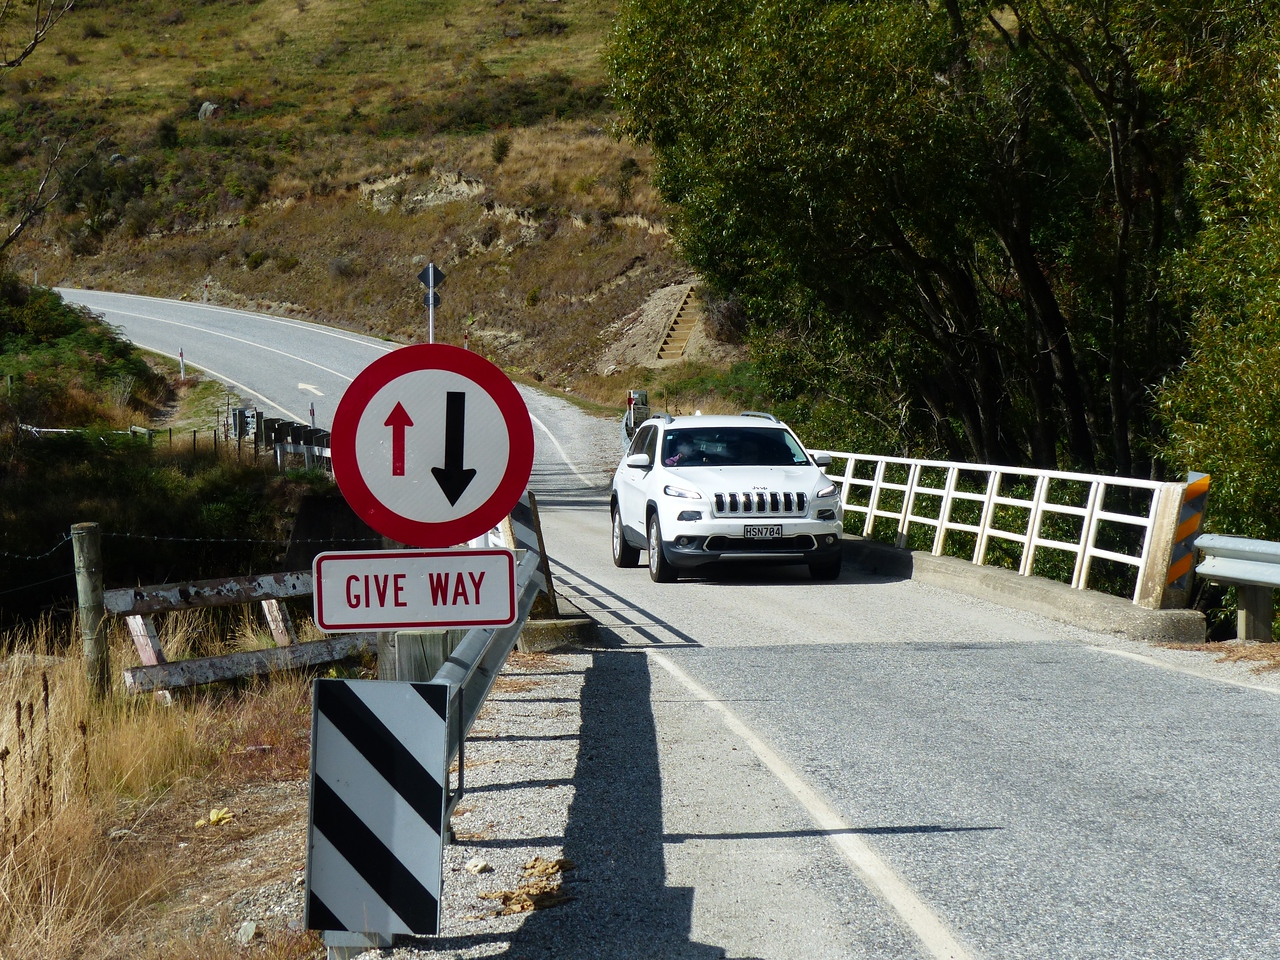 This was a typical New Zealand  highway bridge. Most of the bridges throughout the country had only one lane. The signs indicated who had priority but you always had to make sure someone wasn't coming the other way.